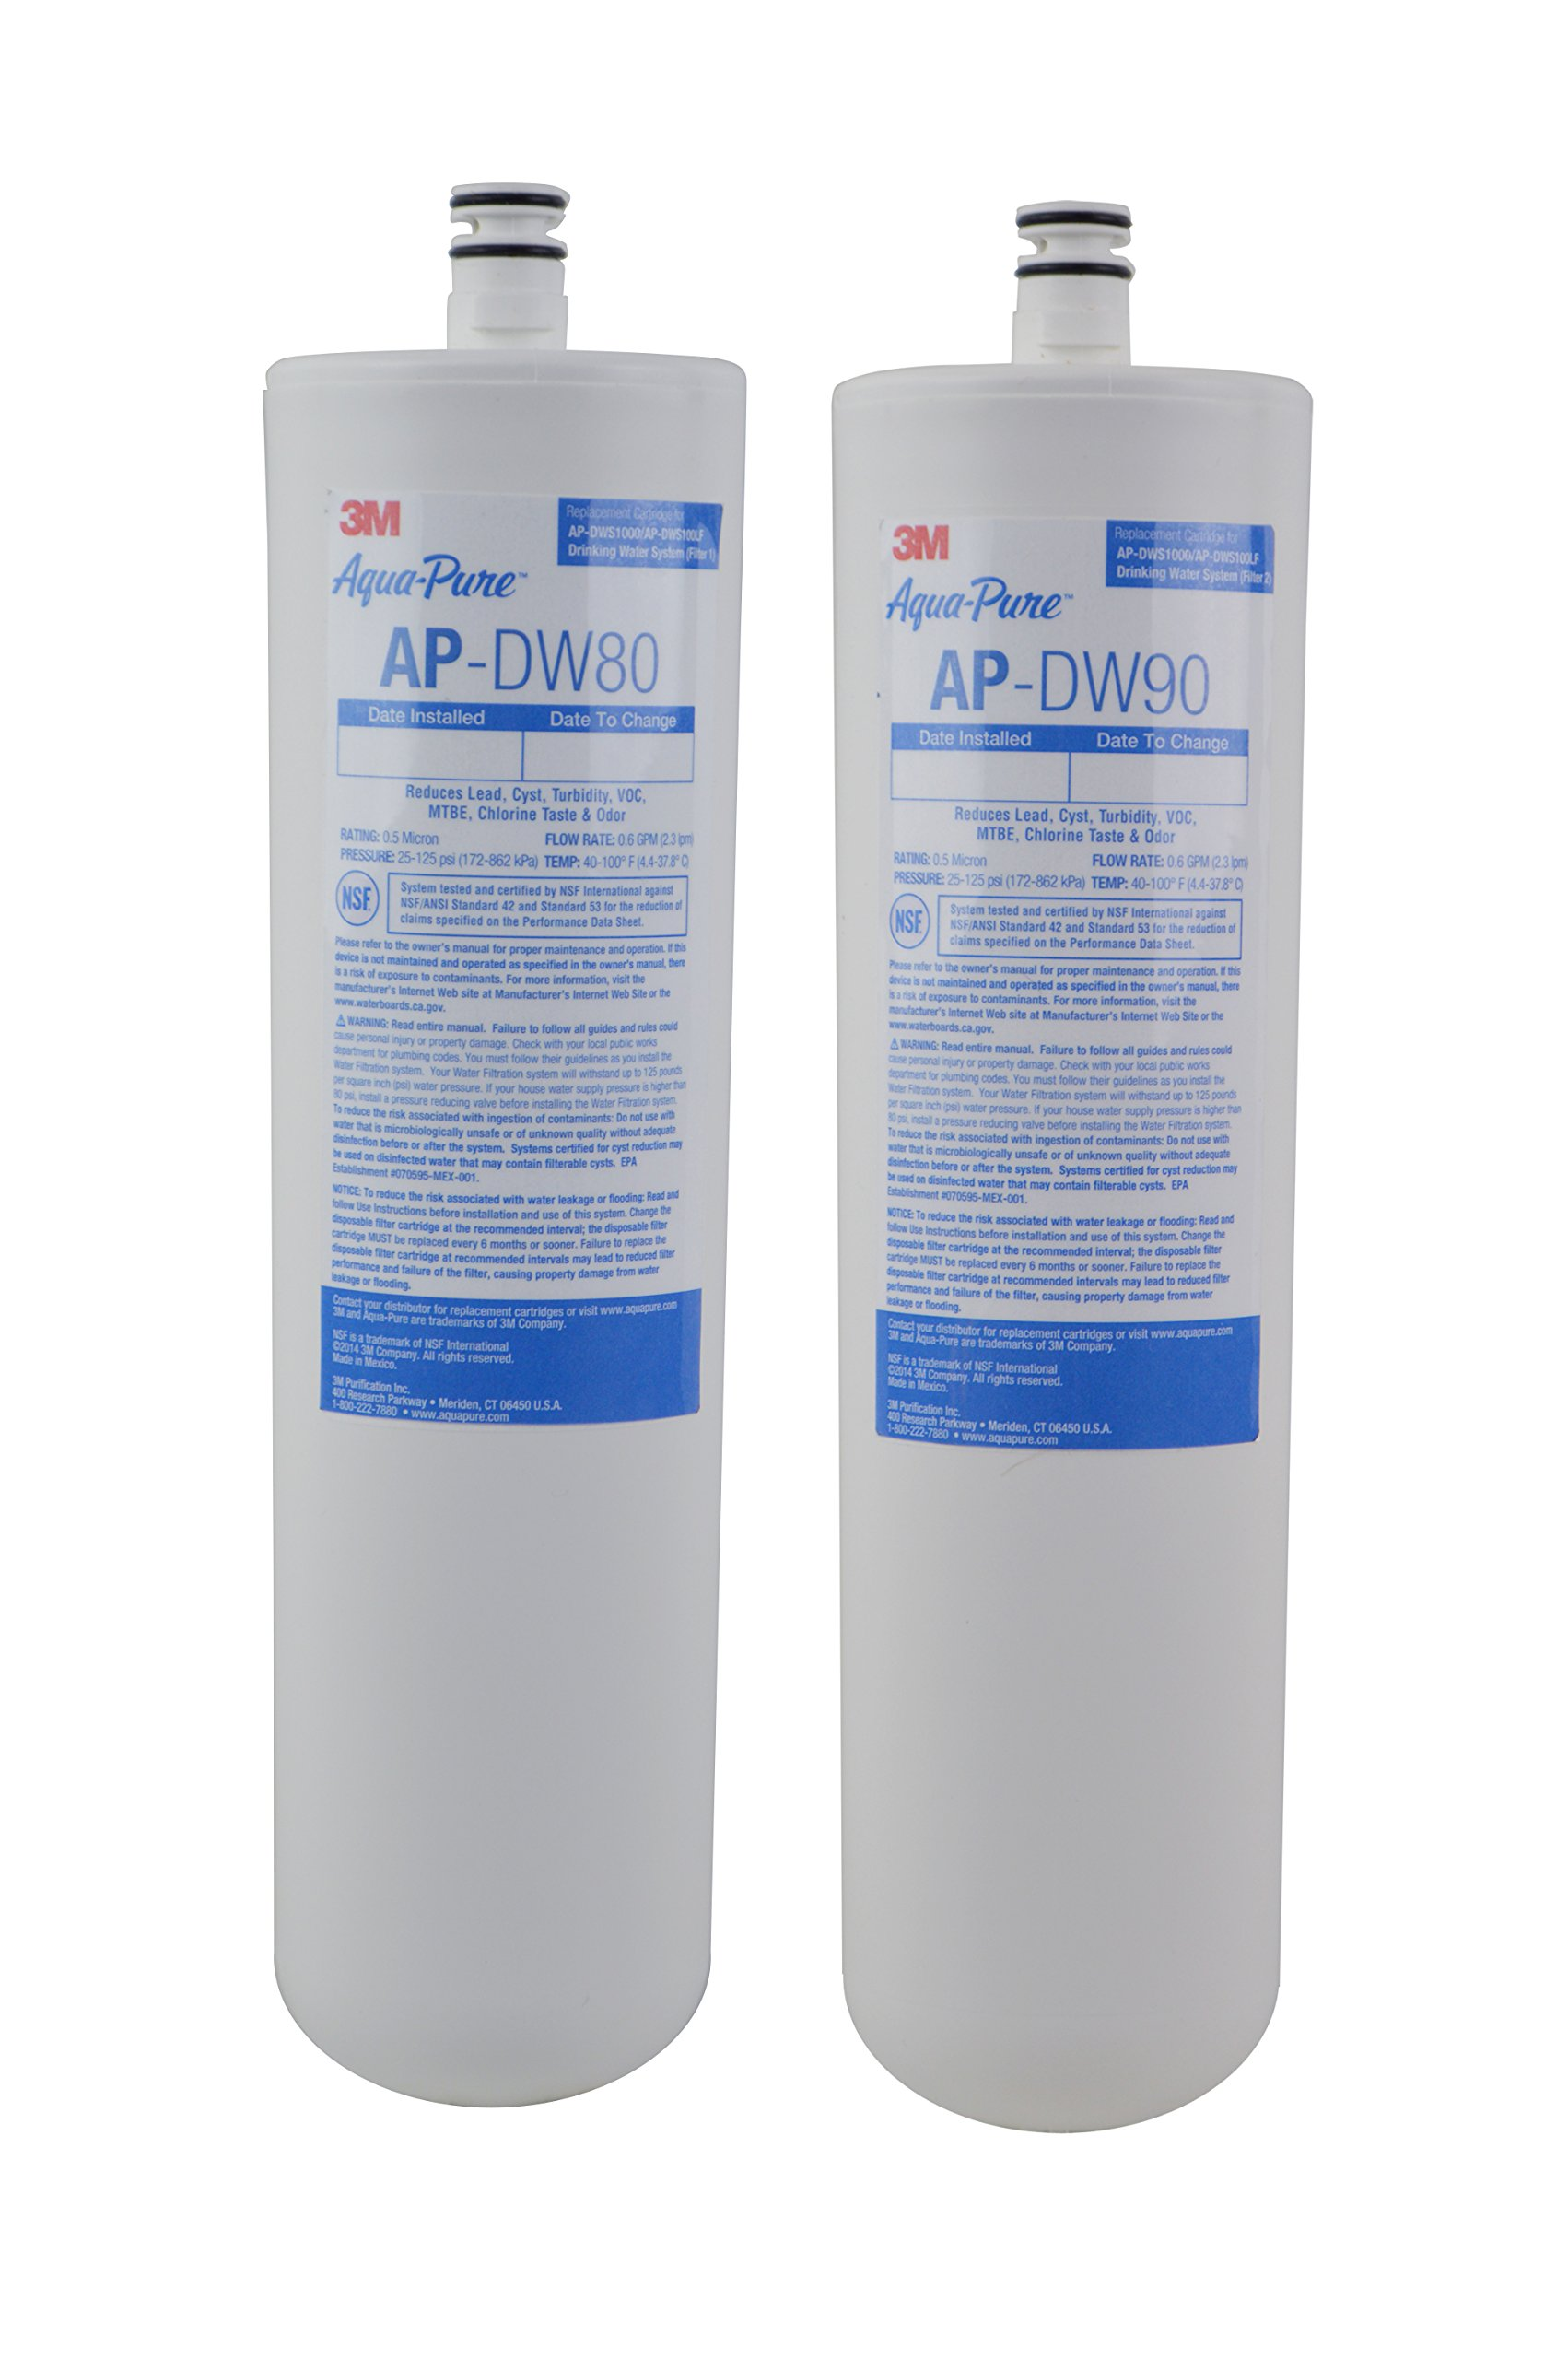 3M Aqua-Pure Under Sink Replacement Water Filter – Model AP-DW80/90 by 3M AquaPure